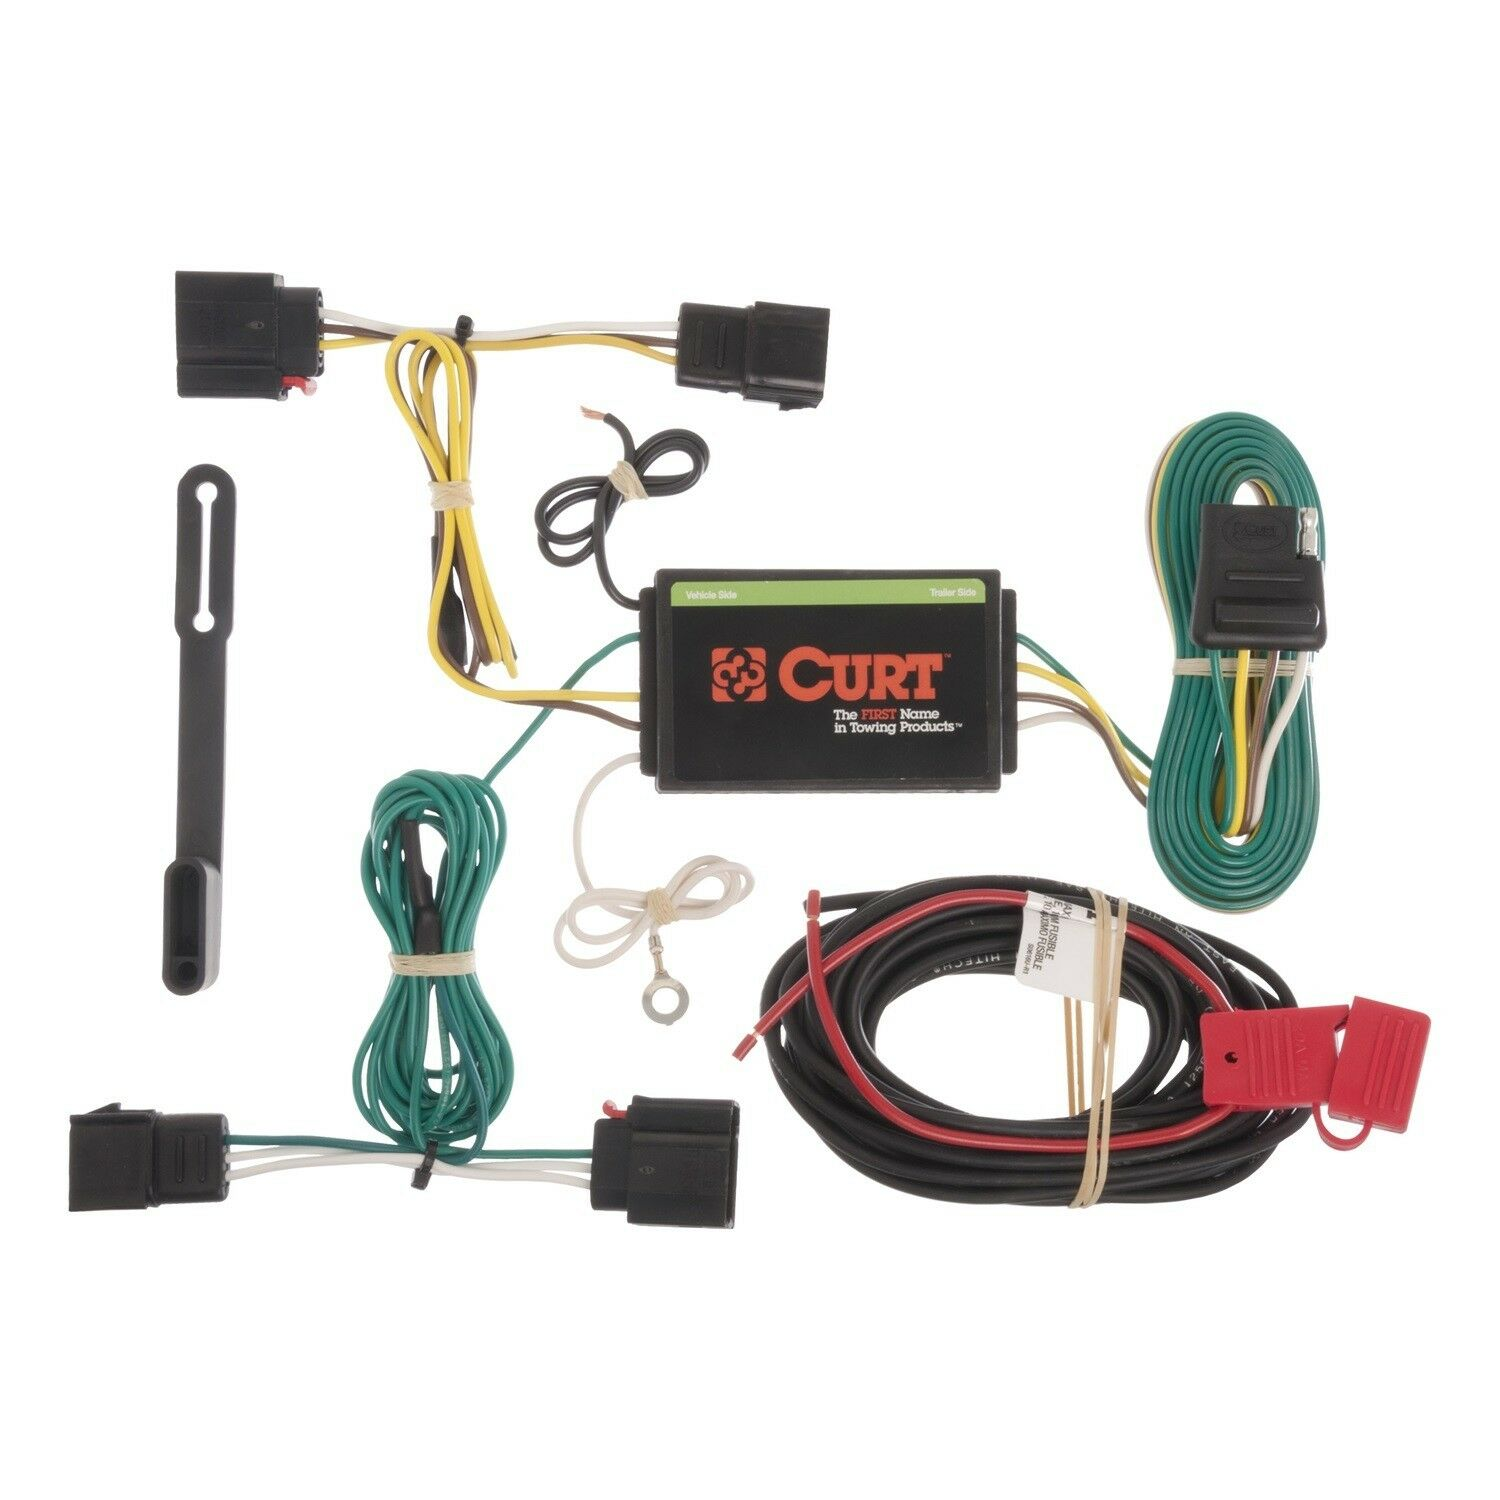 Curt T Connector Wiring Kit 56162 Solutions Tconnector Vehicle Harness With 4 Pole Trailer